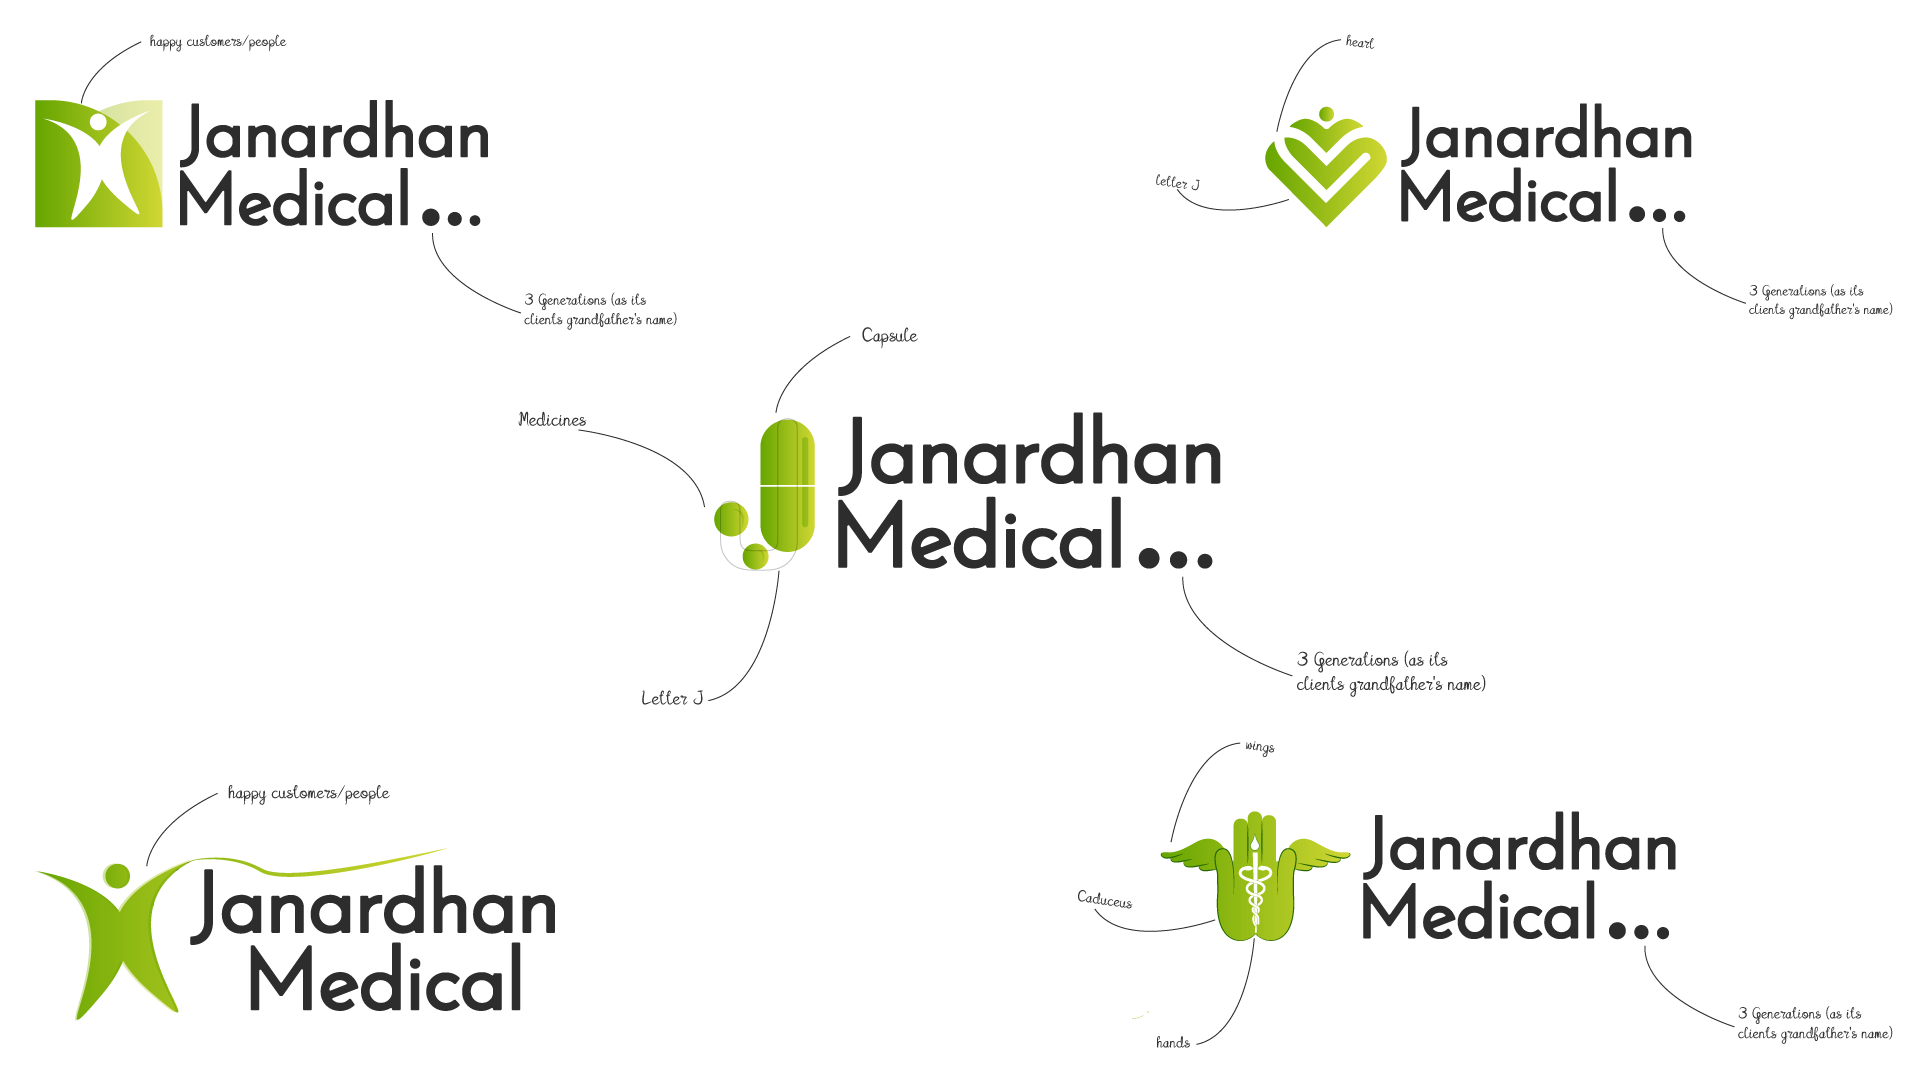 Janardhan-Logo-Exploration